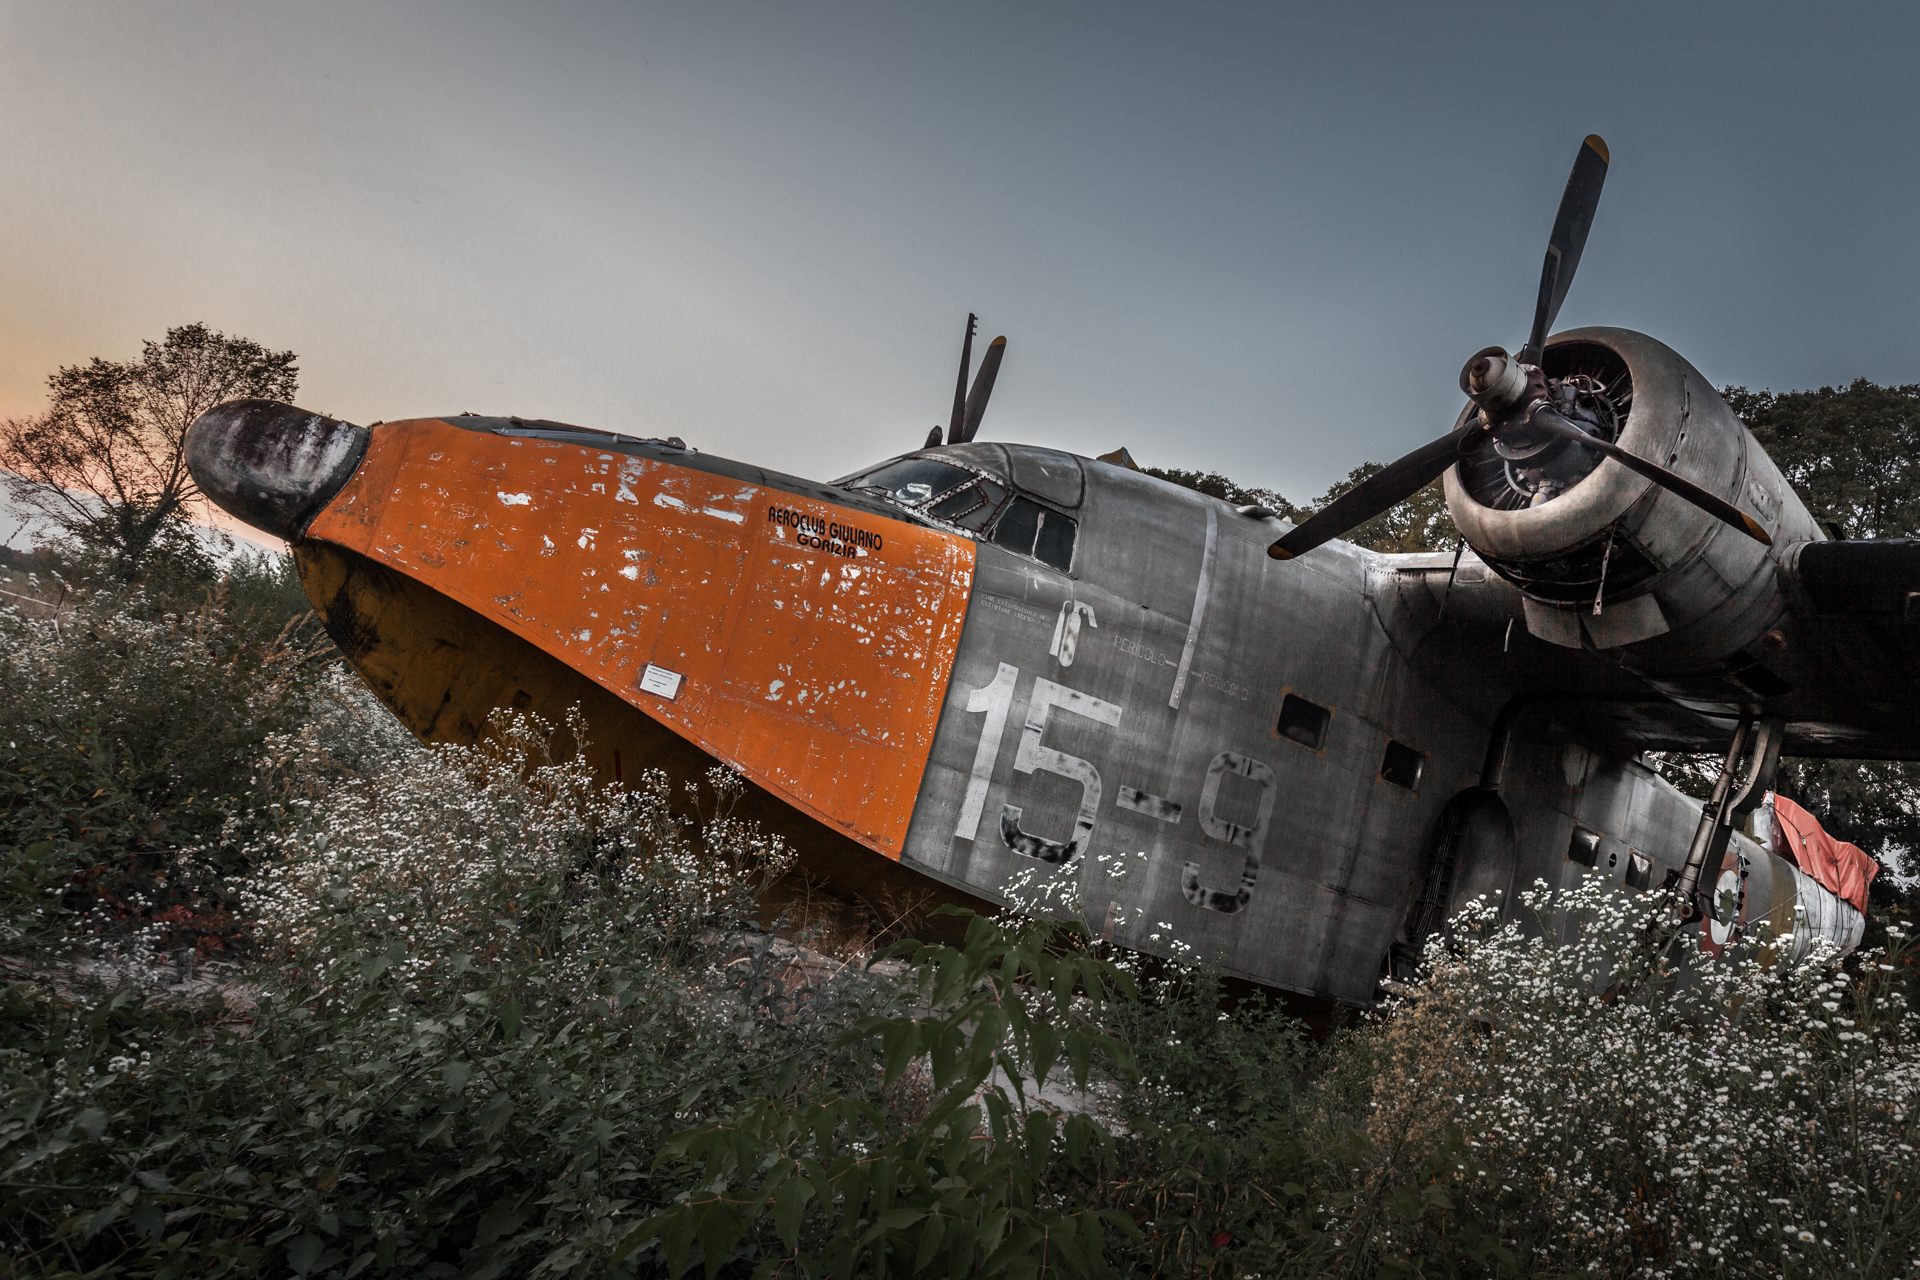 Urban Exploration - Airbase Confeccio - Longing for the Sky